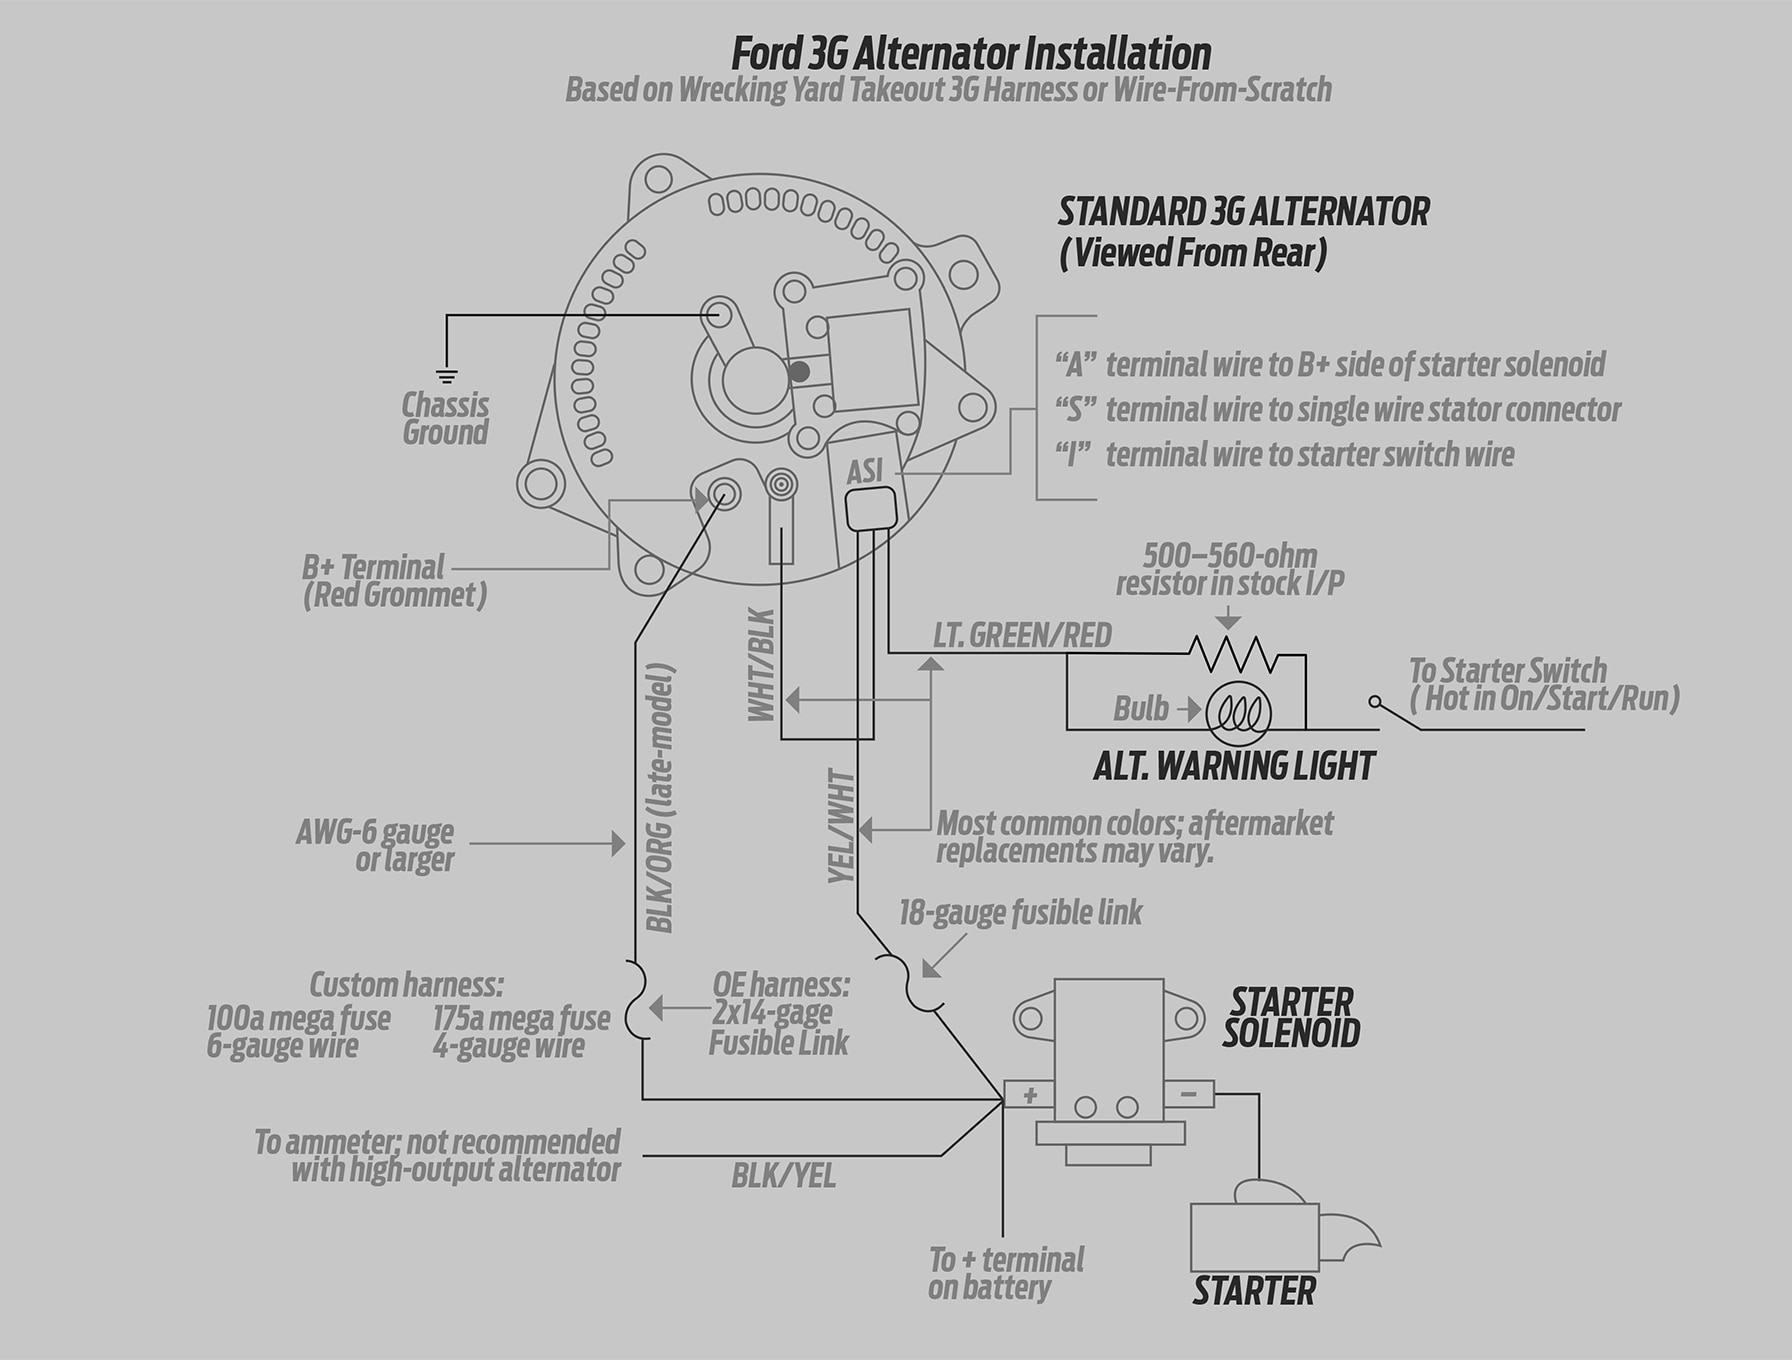 ford 3g alternator wiring harness wiring diagram experthow to install a high output ford 3g alternator [ 1792 x 1360 Pixel ]